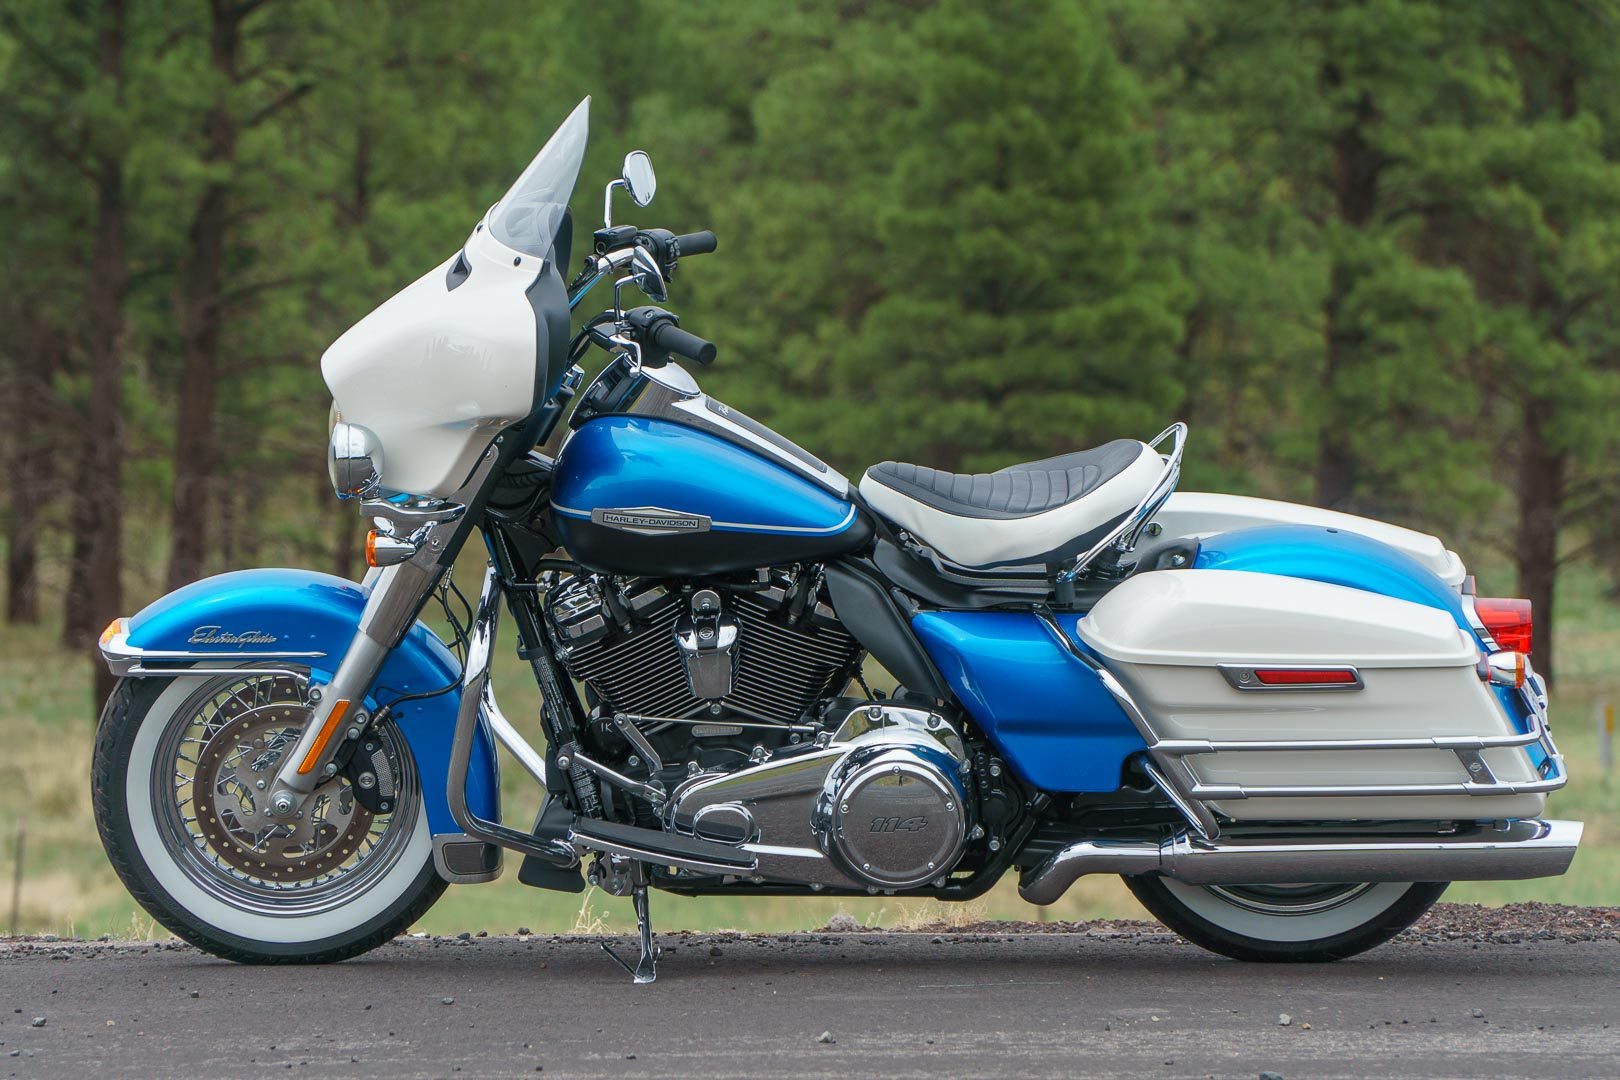 Electra Glide Revival Test: Price